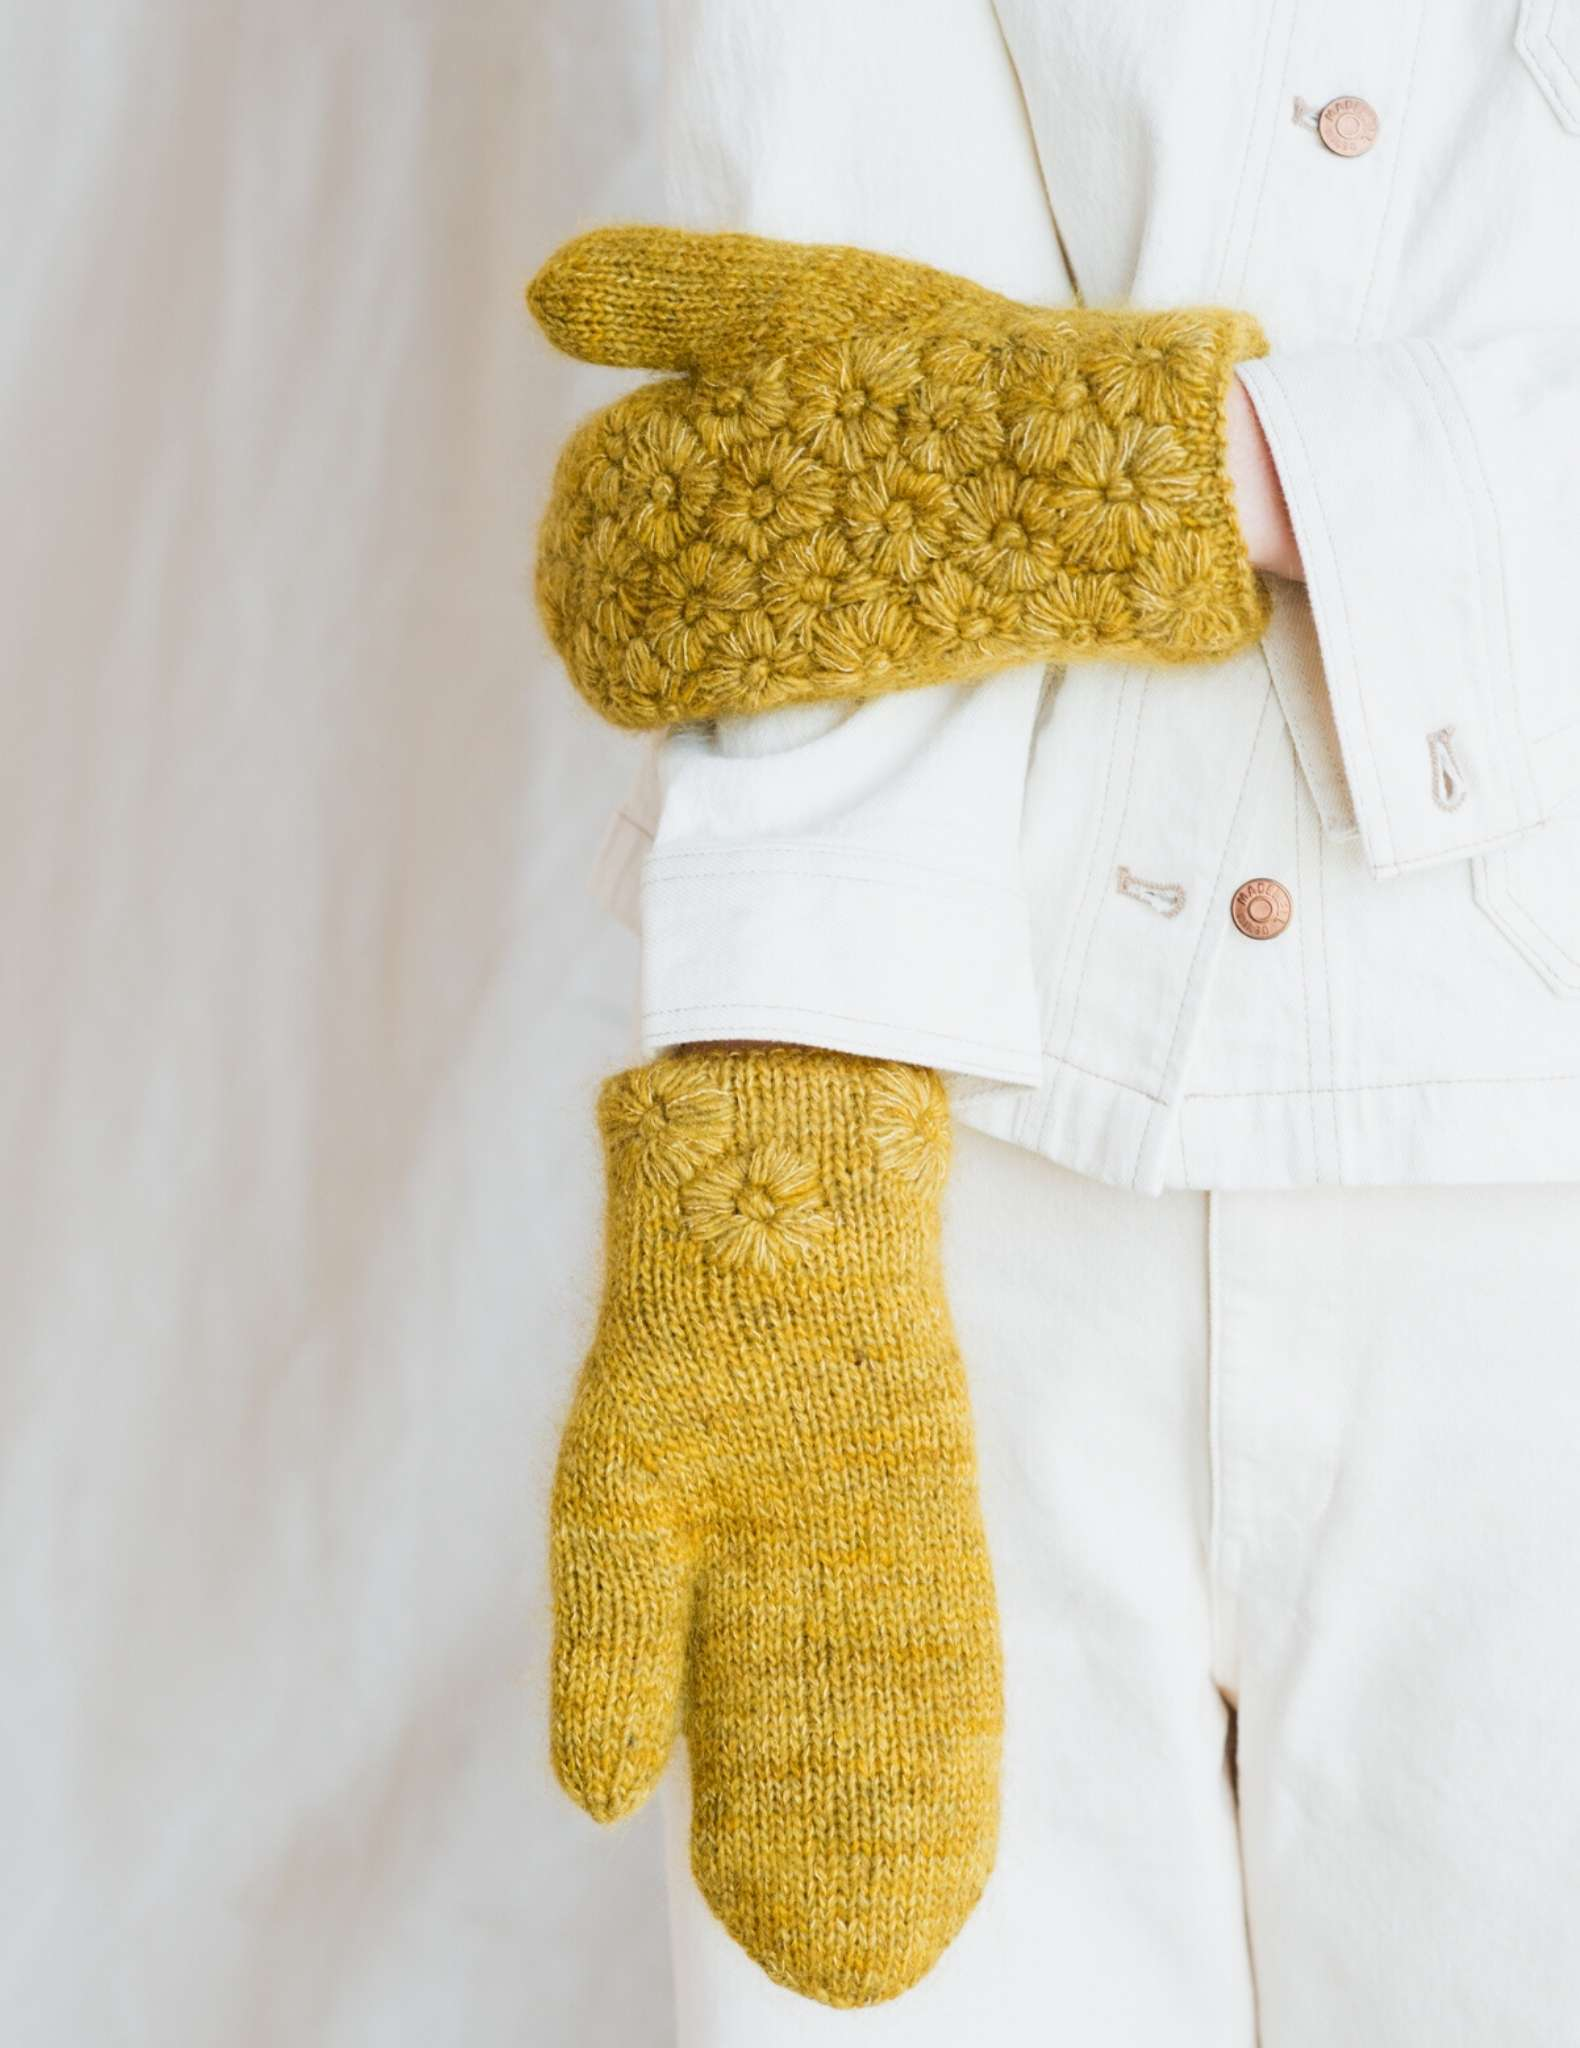 A pair of mittens are worn by a model wearing white, one arm is behind held straight down with palm side up, the other hand is resting on the straight arm, showing the detailed back of the yellow mitten